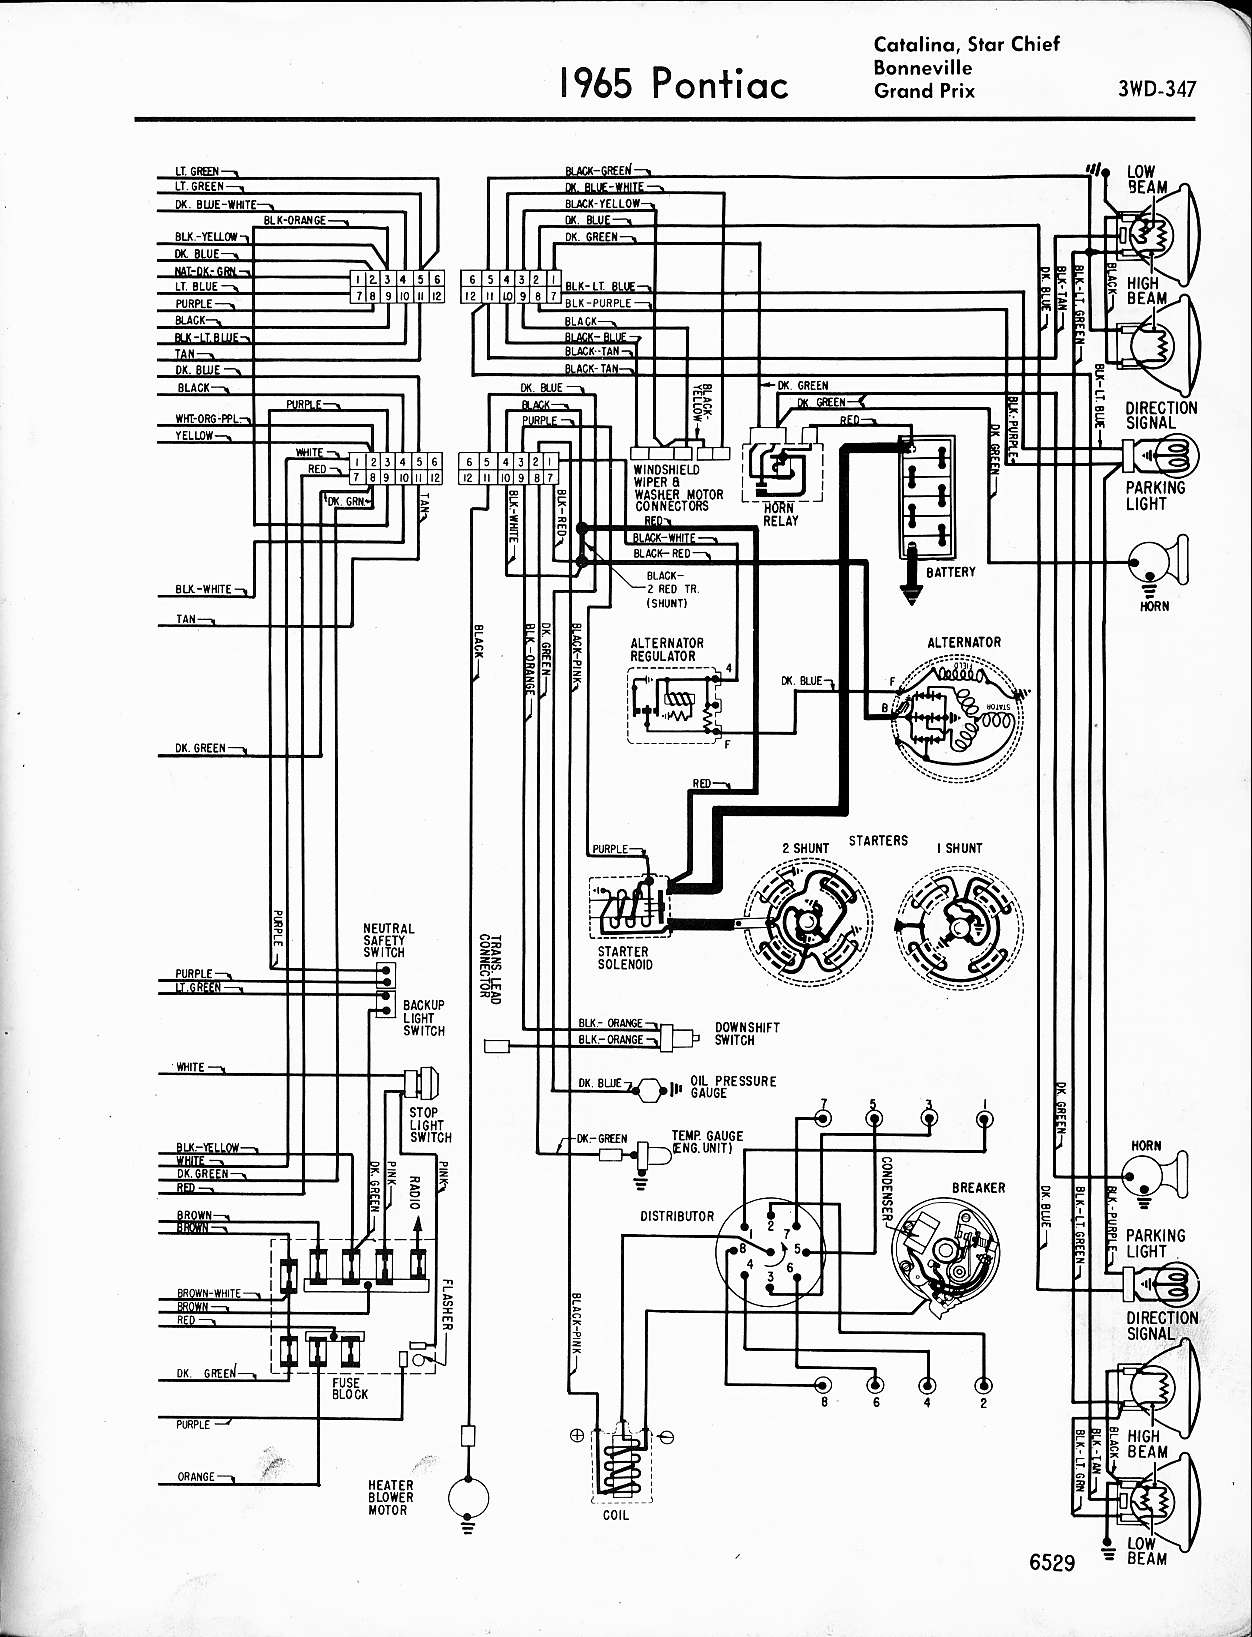 1965 Pontiac Gto Wiring Diagram on 1965 mustang neutral safety switch wiring